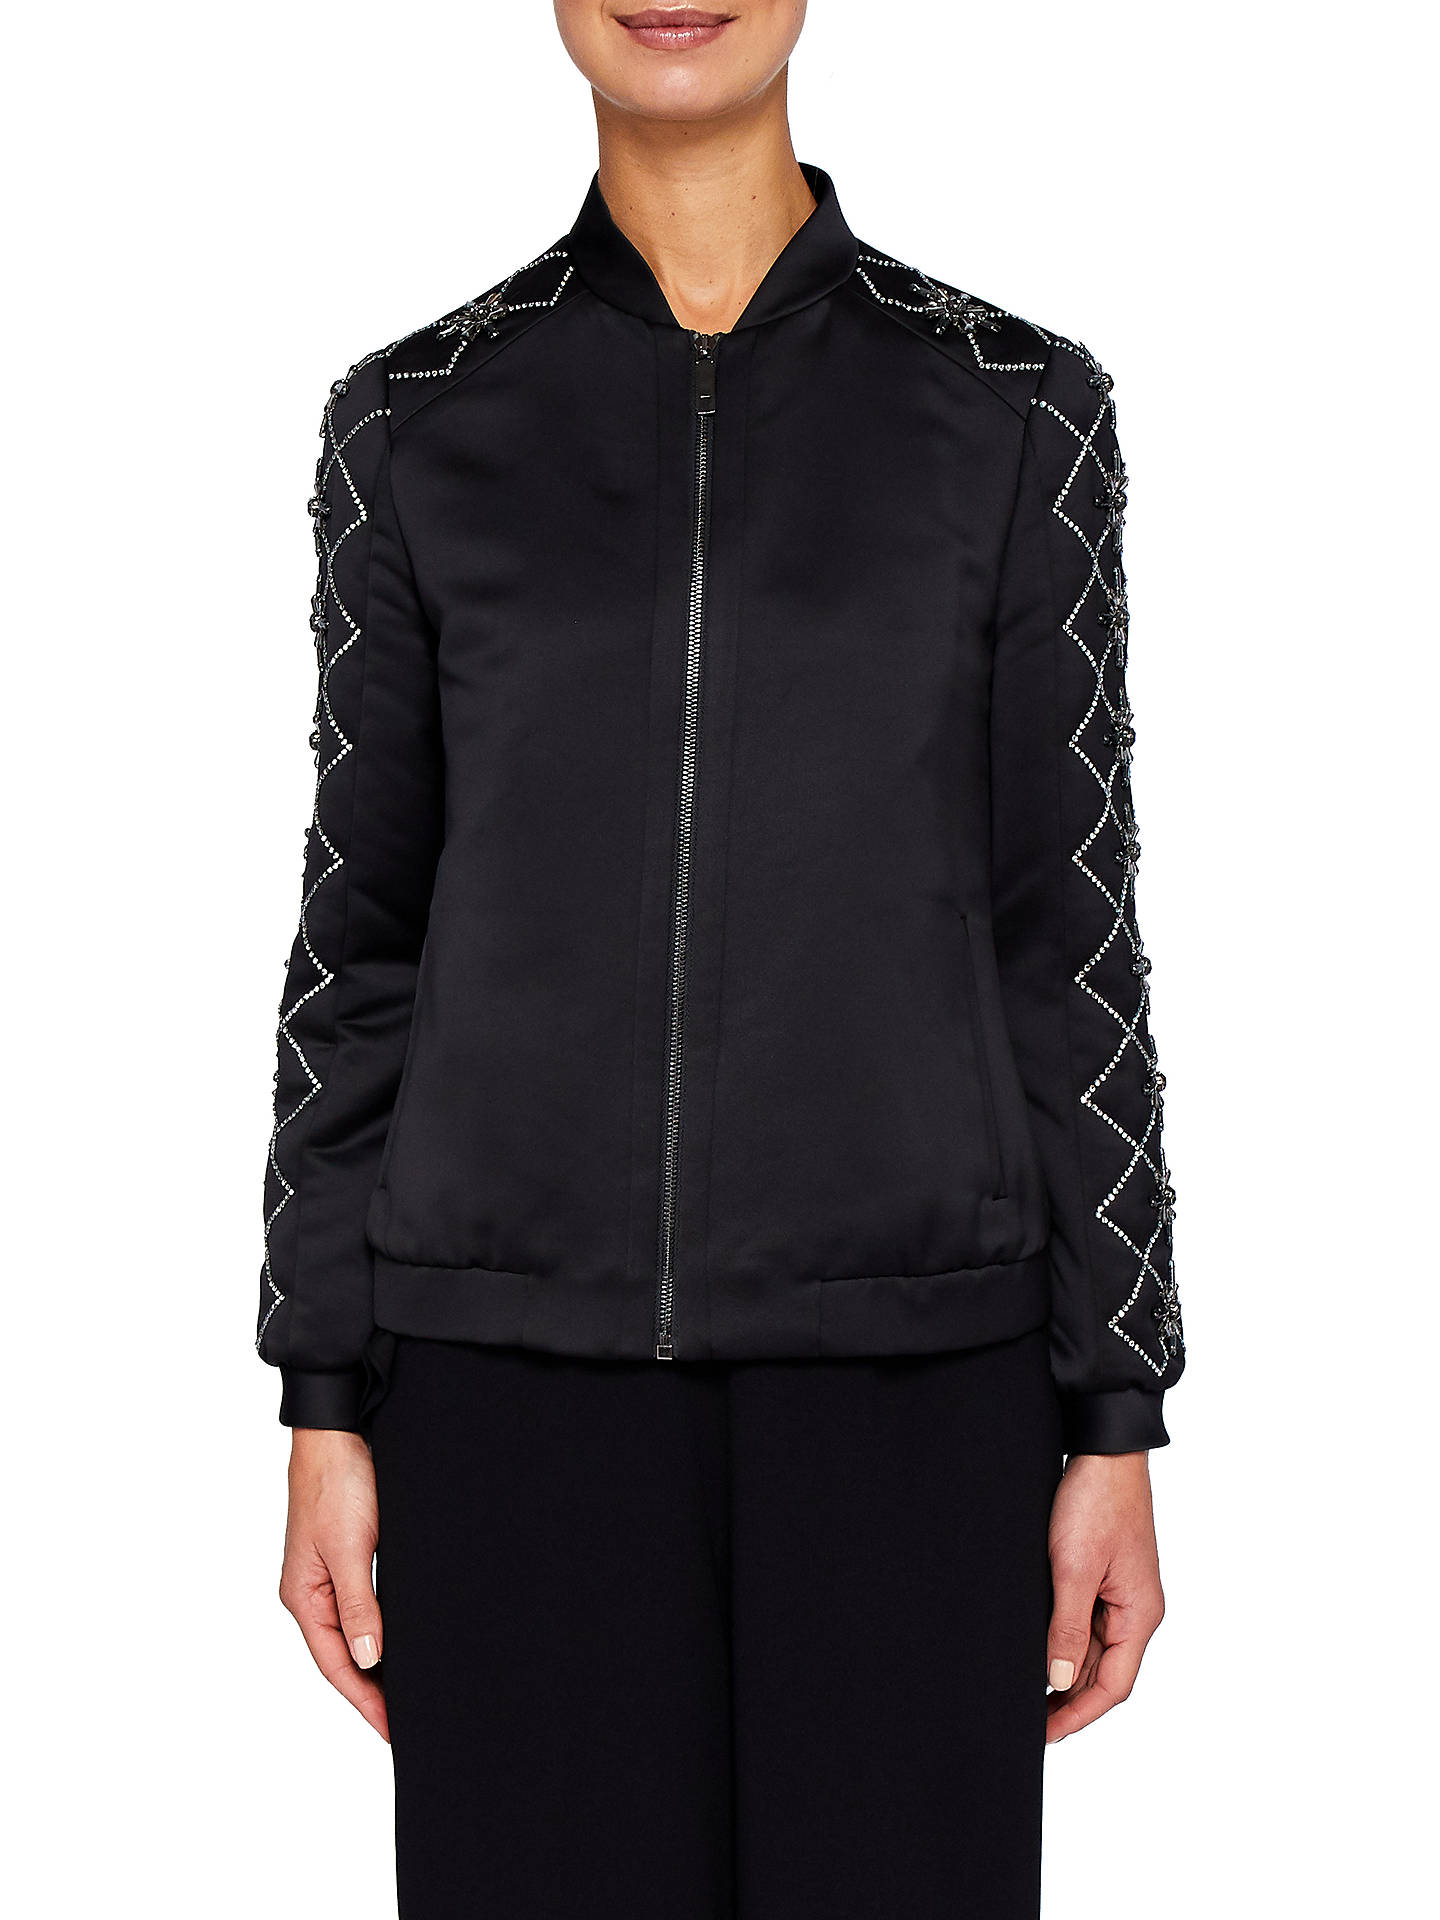 f4c3669ad Ted Baker Jamala Embellished Satin Bomber Jacket, Black at John ...